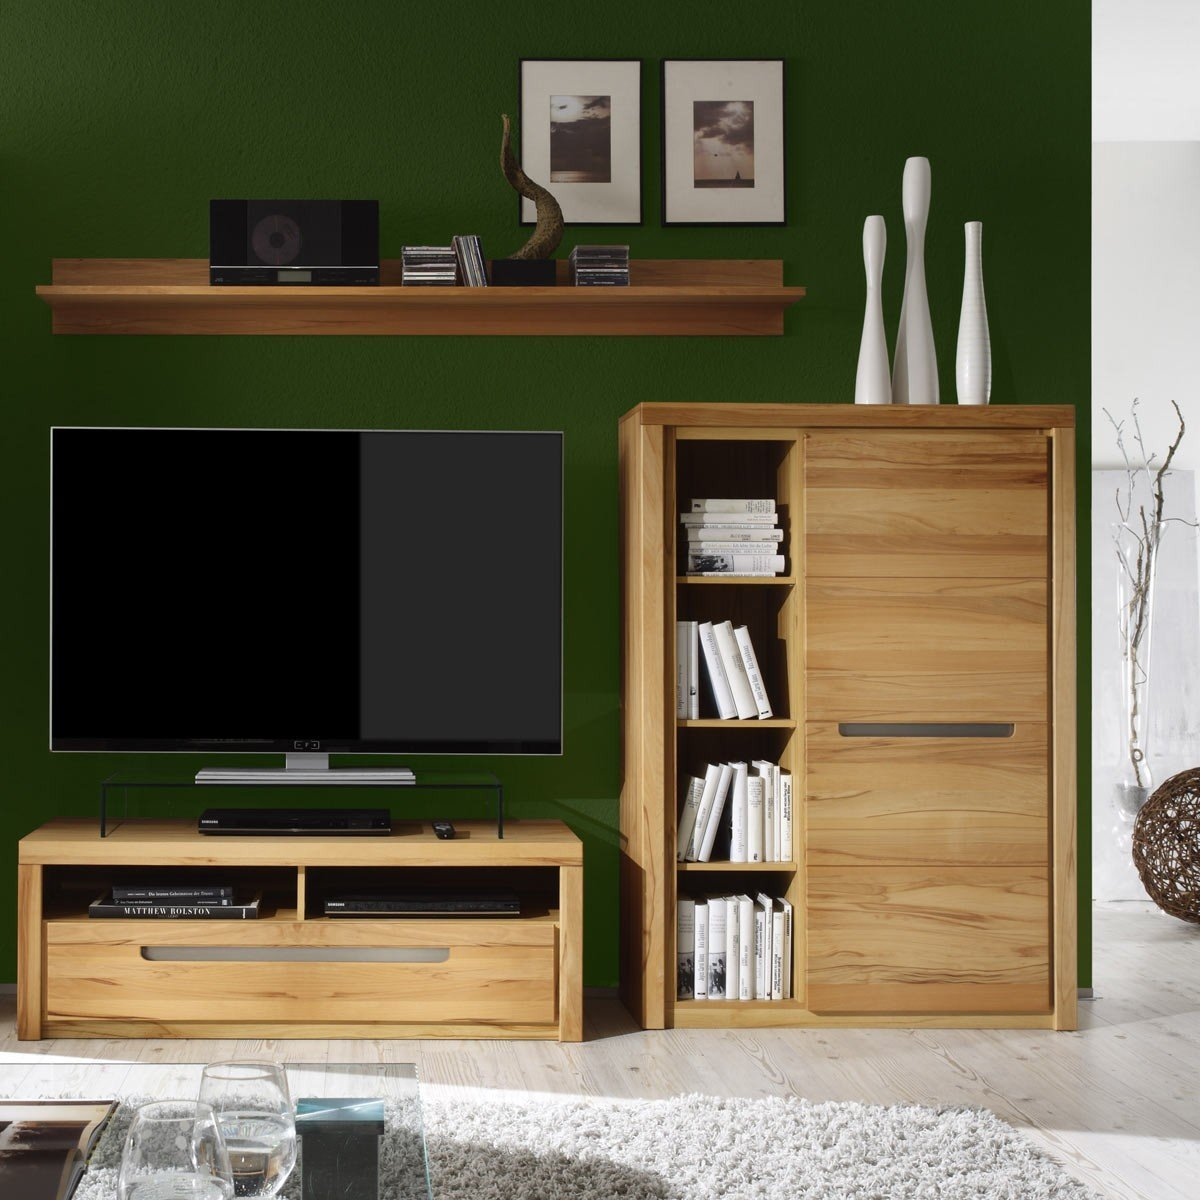 kommode zino kernbuche massiv highboard sideboard wohnzimmer schrank anrichte m bel wohnen. Black Bedroom Furniture Sets. Home Design Ideas